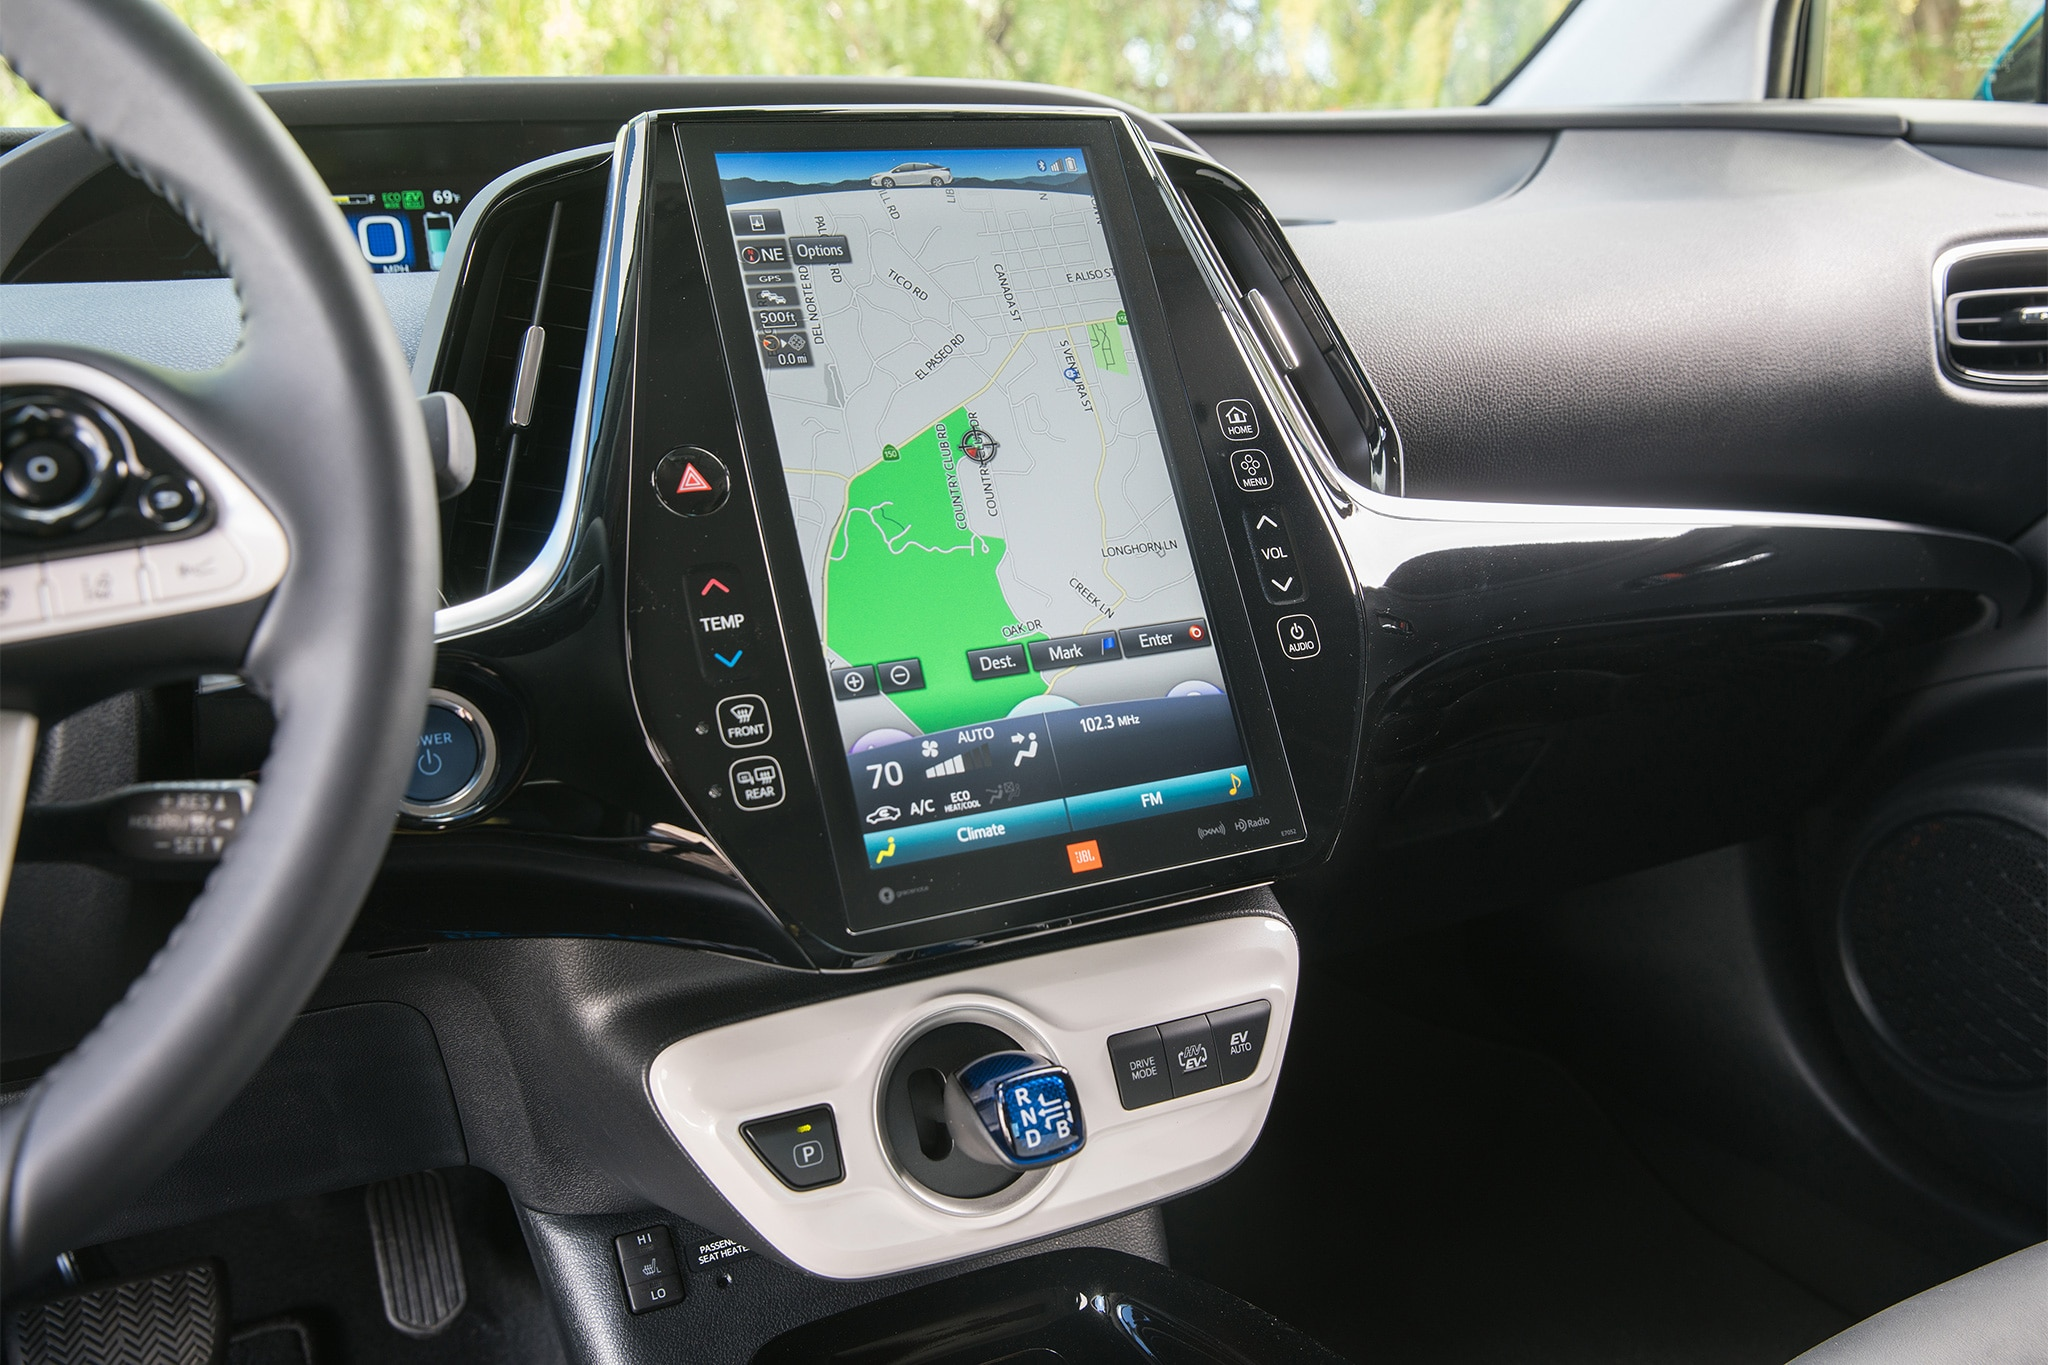 2017 Toyota Prius Prime Second Drive Roadtest Review | Automobile